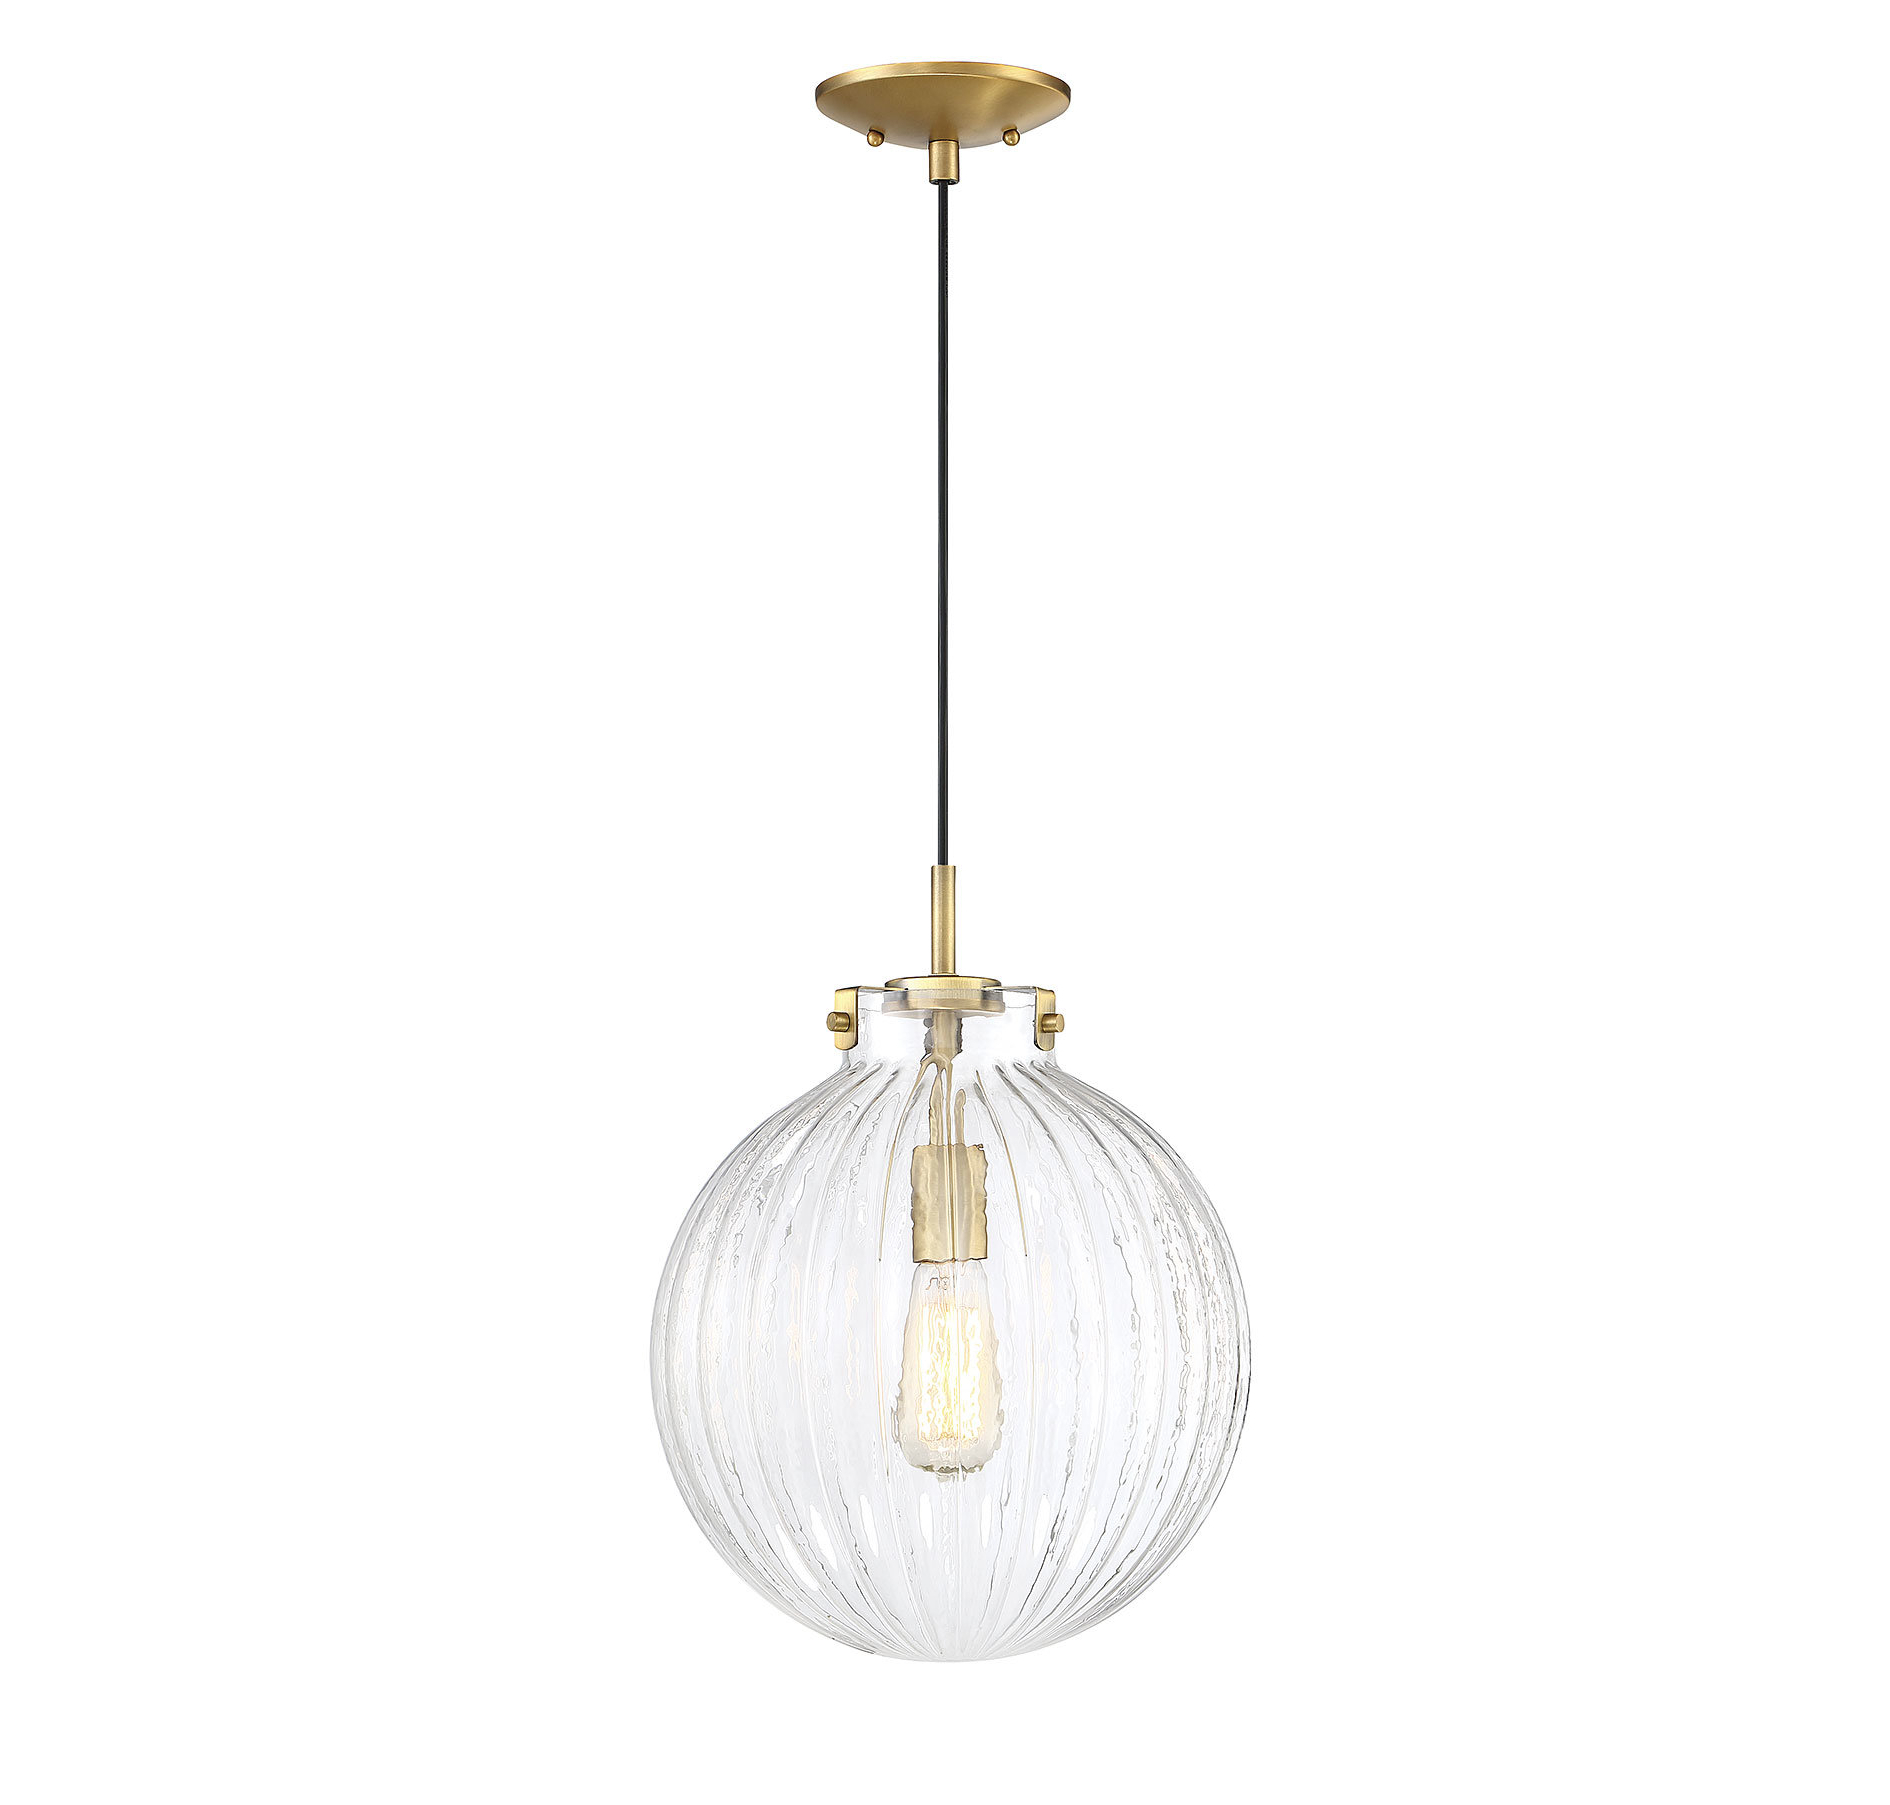 Most Popular Nevels 1 Light Single Globe Pendant Pertaining To Bundy 1 Light Single Globe Pendants (Gallery 15 of 20)